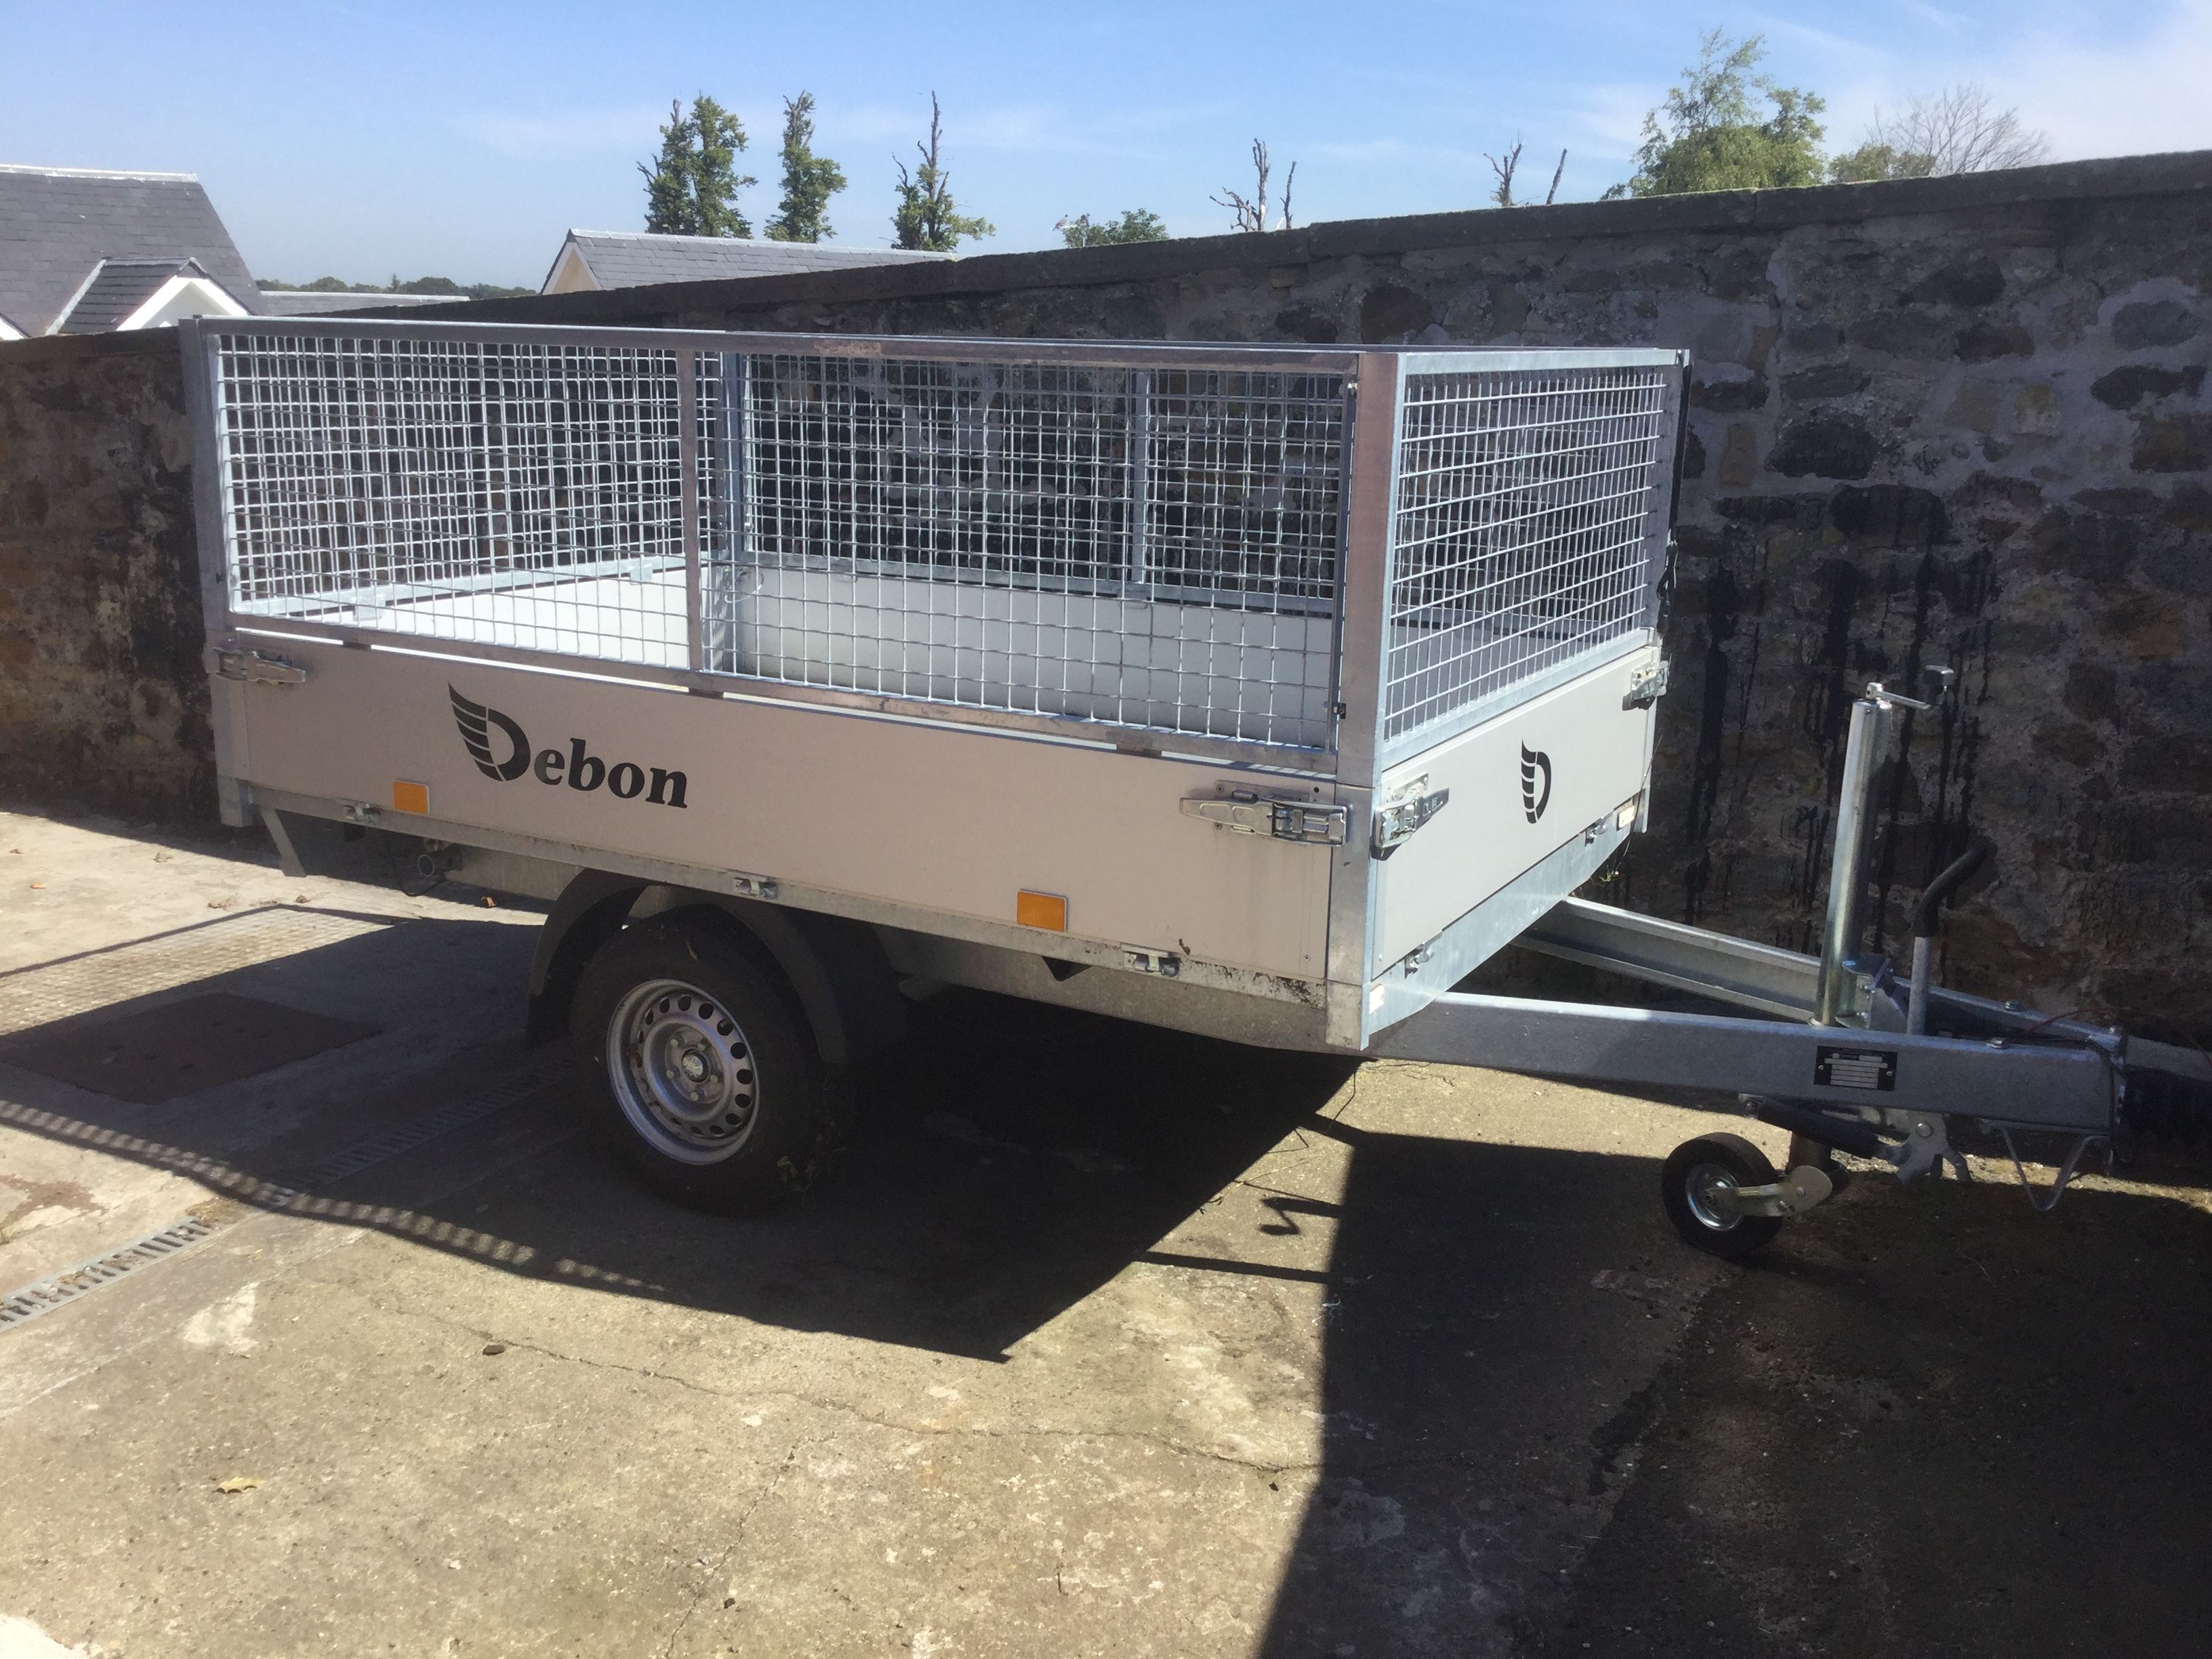 Debon electric tipper with cage sides